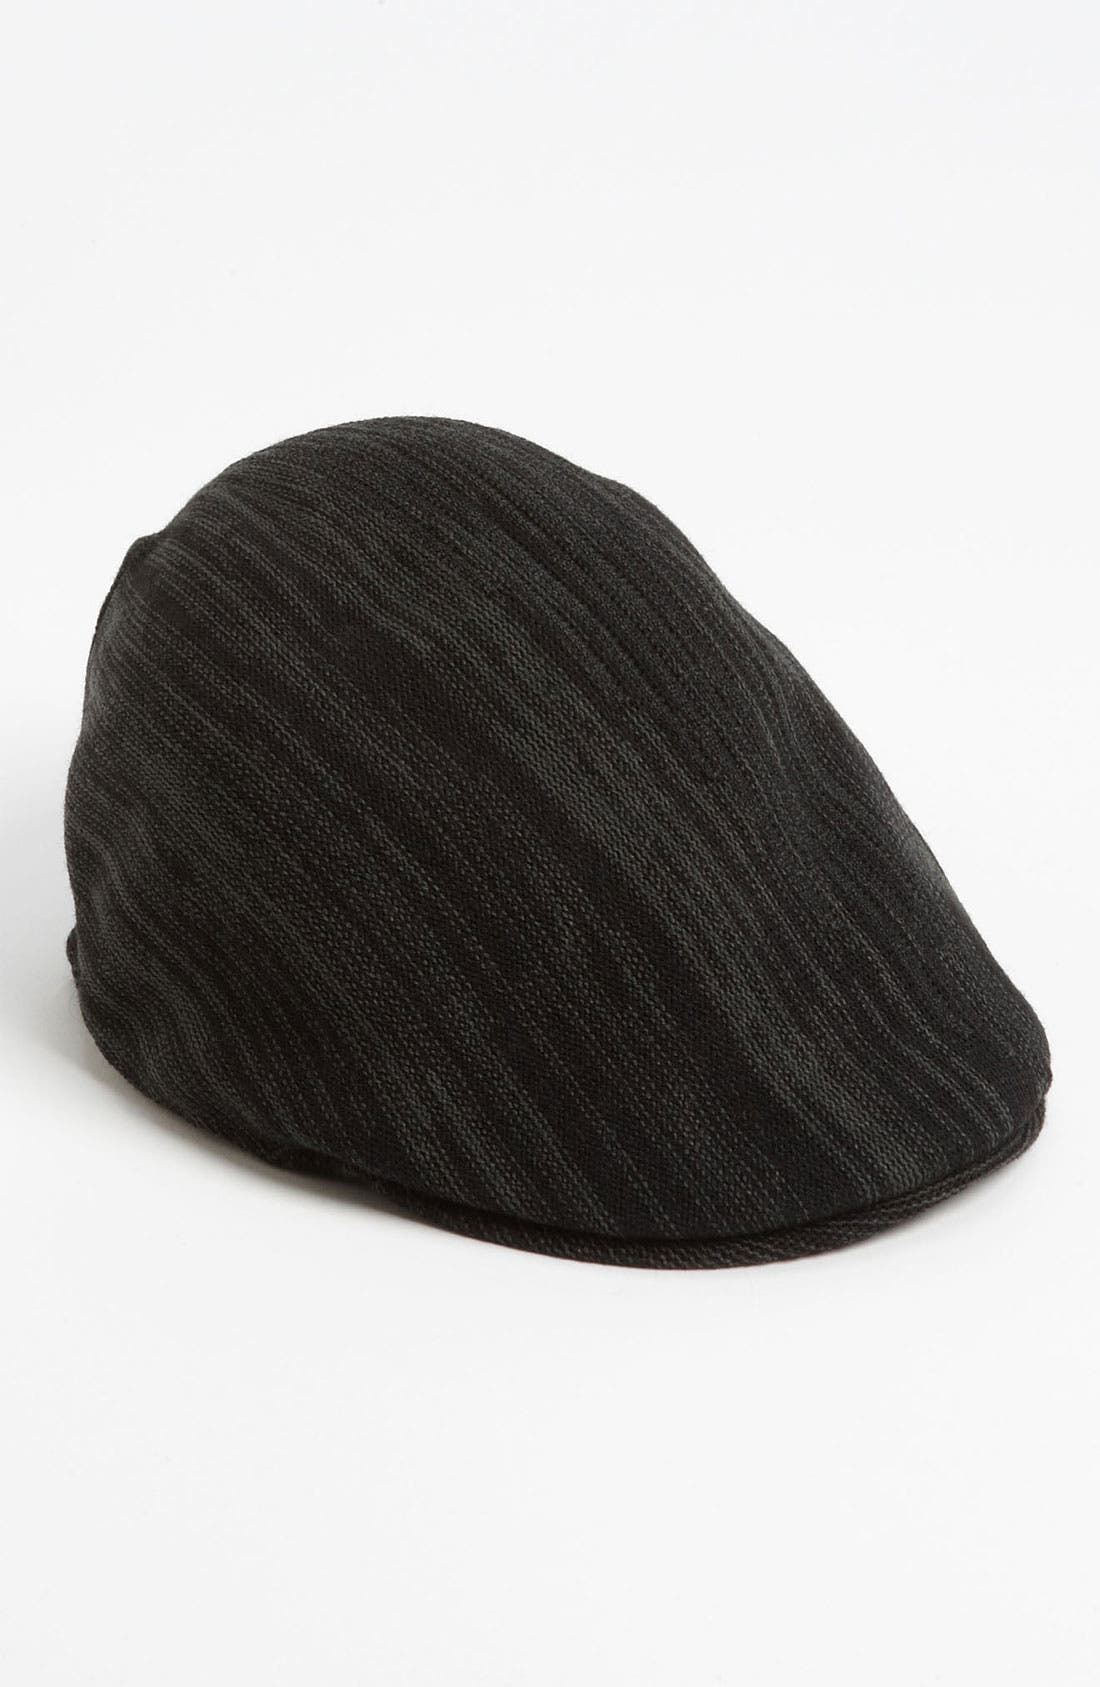 Alternate Image 1 Selected - Kangol 'Angle Stripe 507' Driving Cap